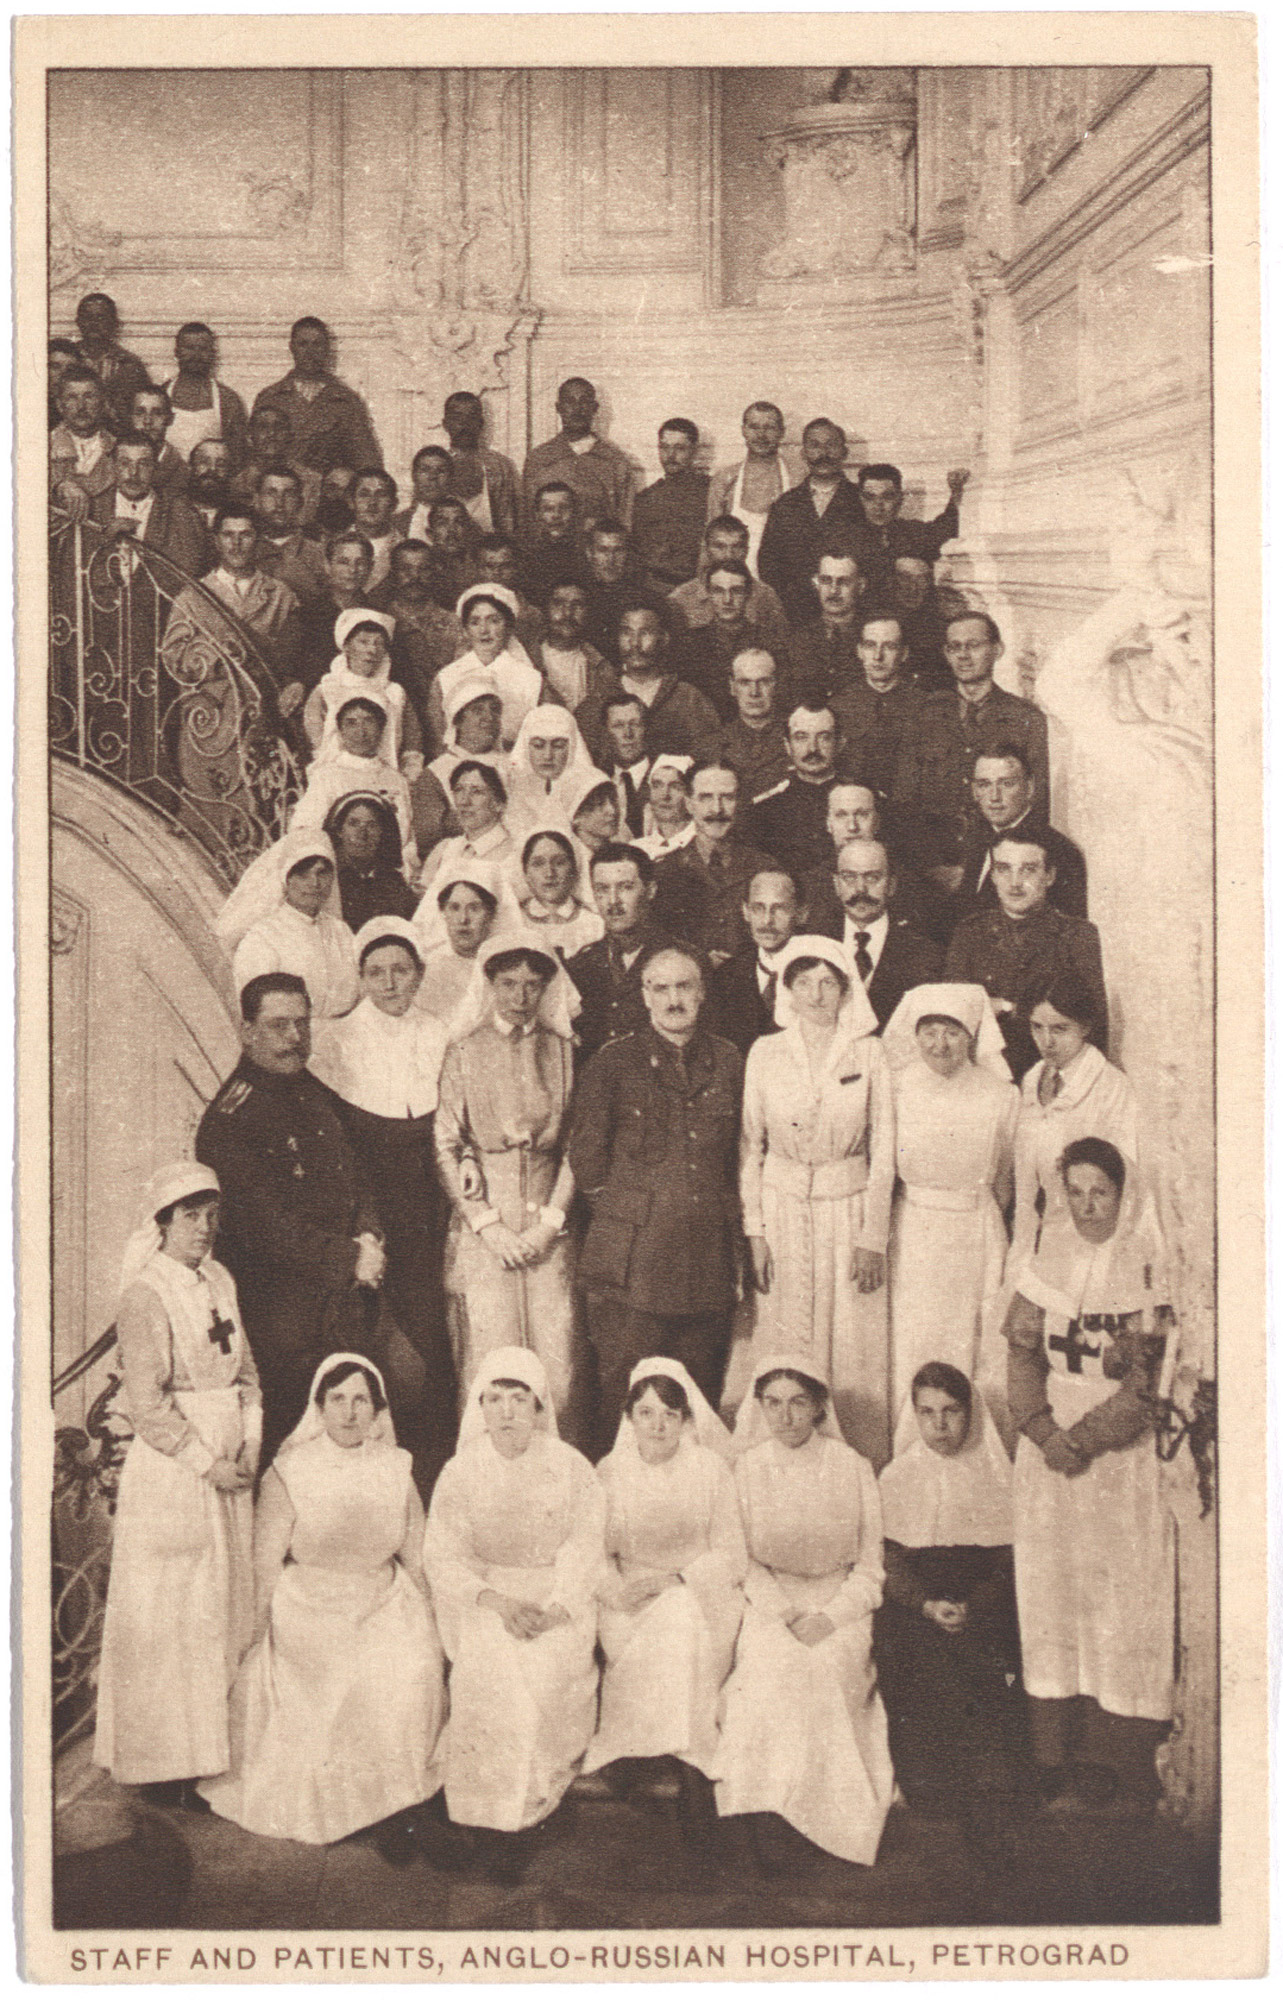 The Anglo-Russian Hospital in Petrograd (St Petersburg) which opened in February 1916.